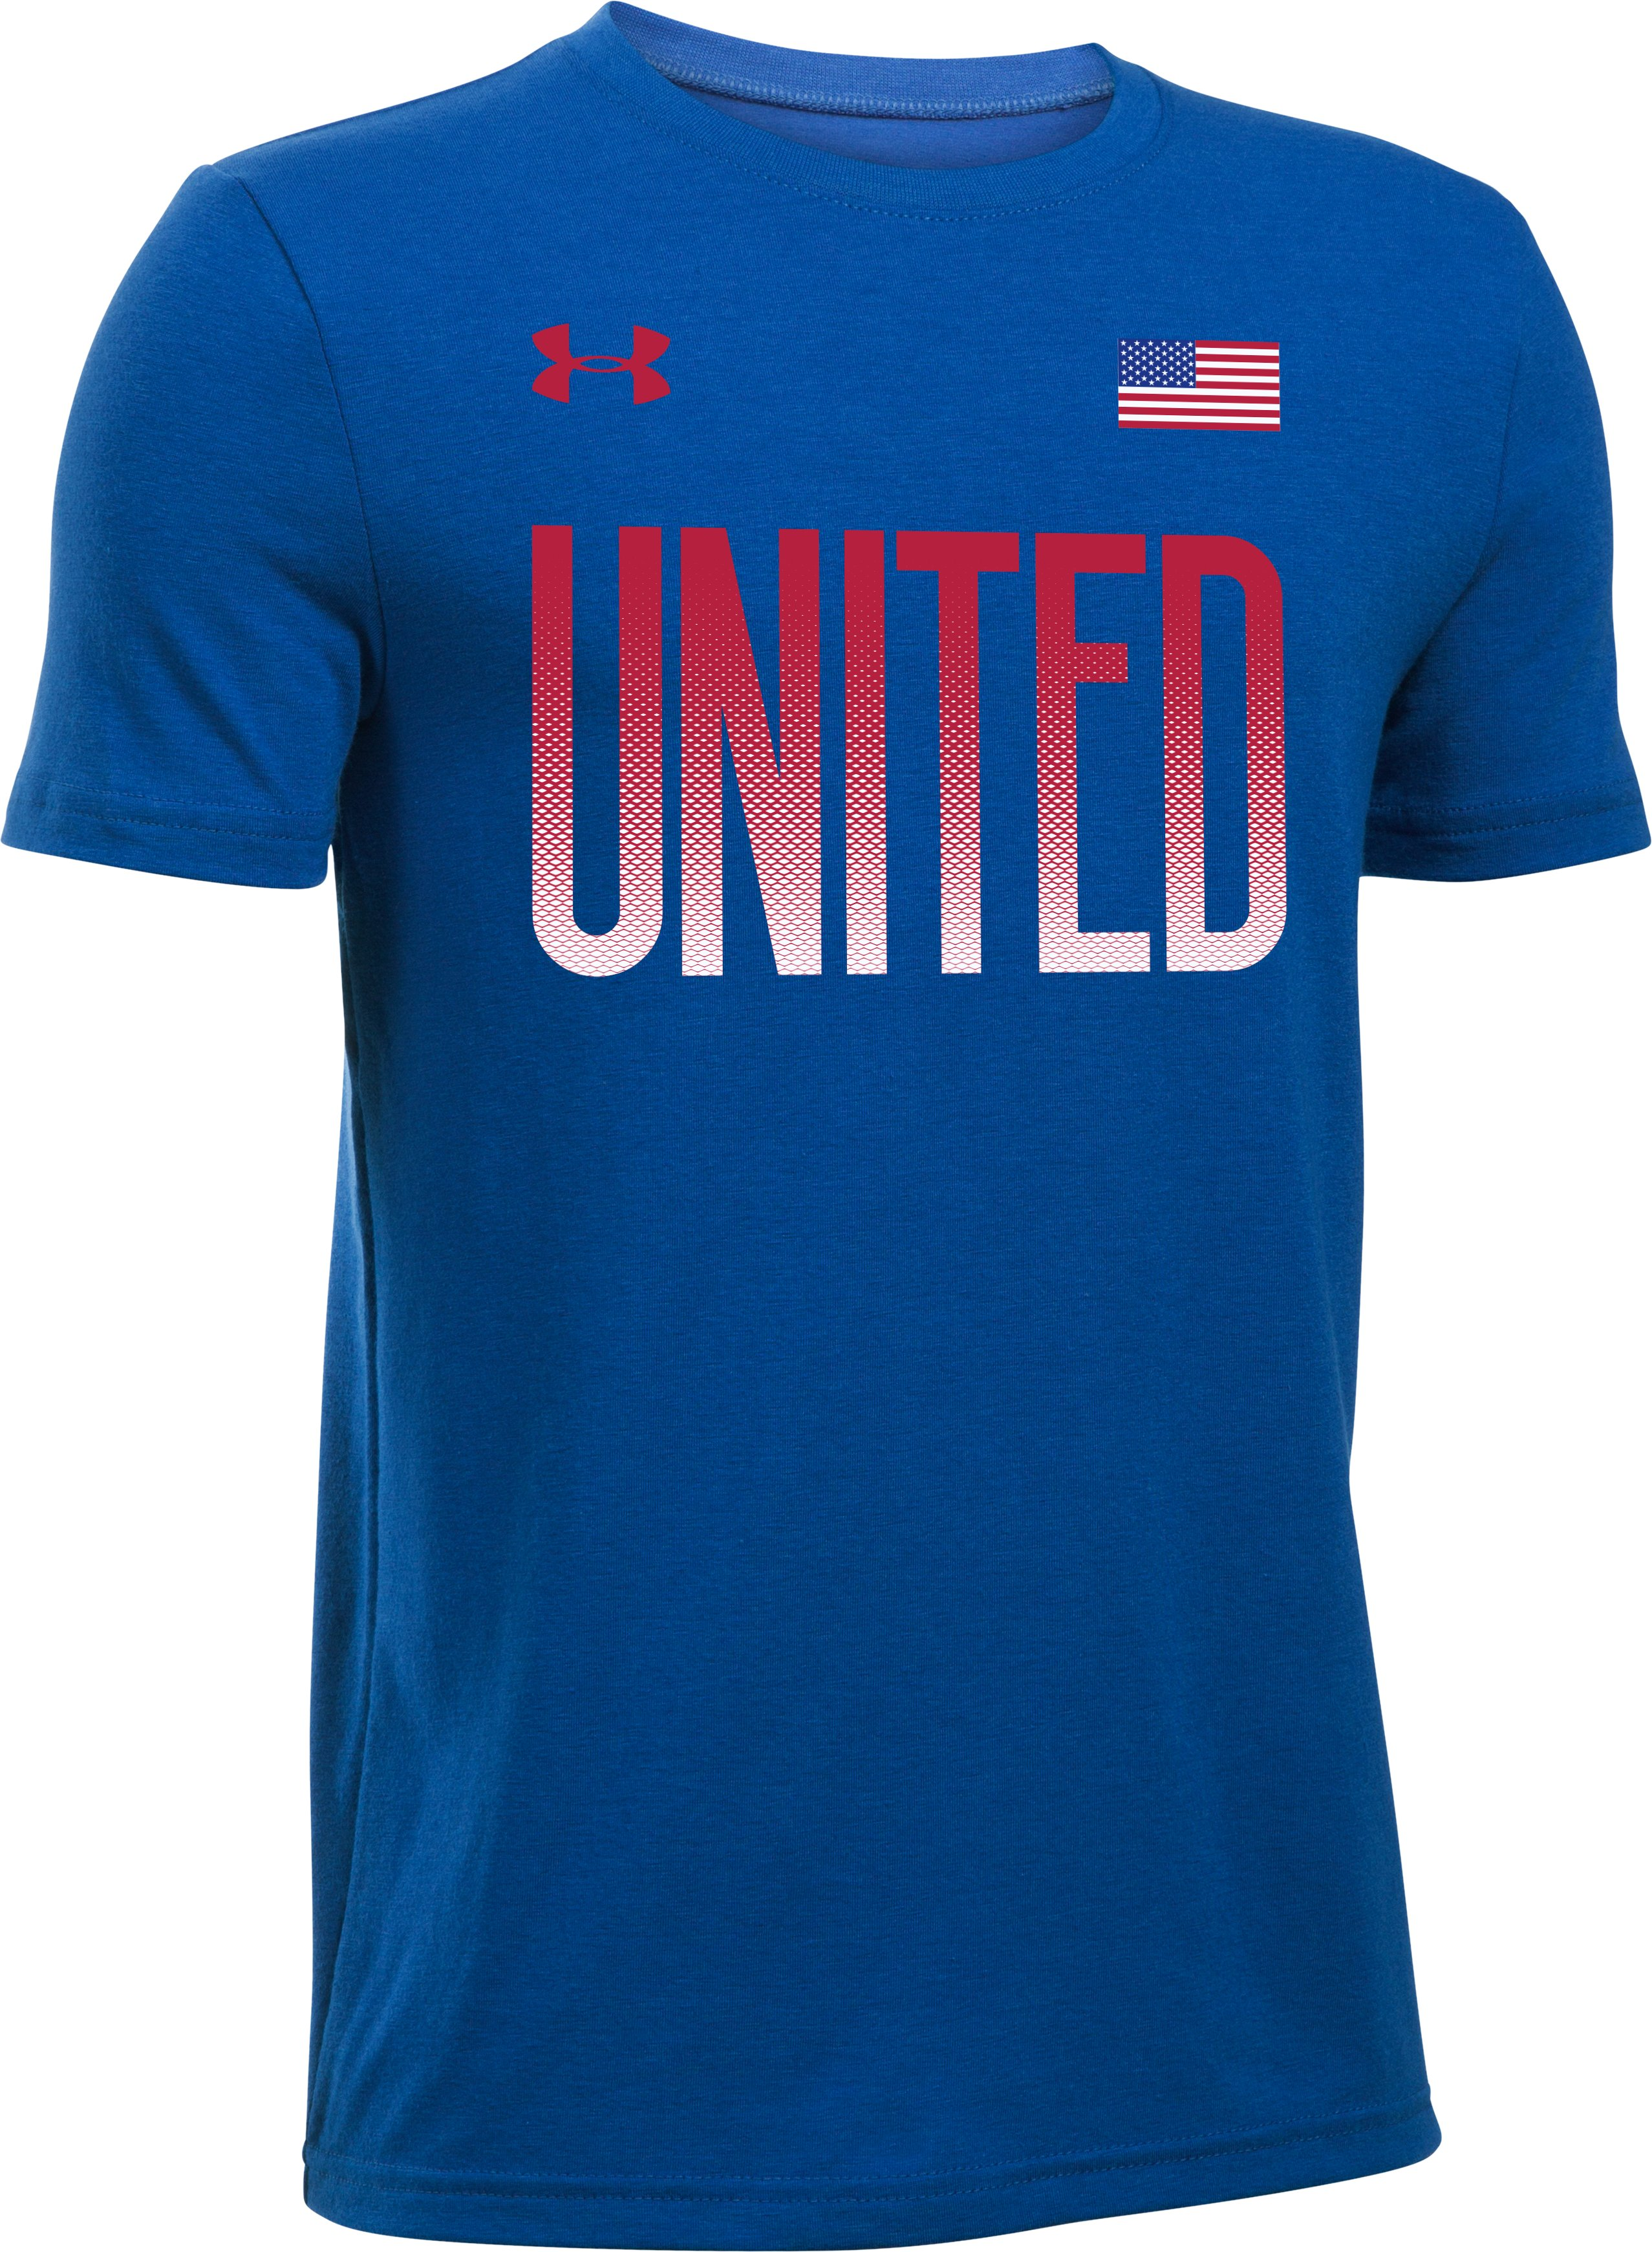 Boys' UA United T-Shirt, Royal,